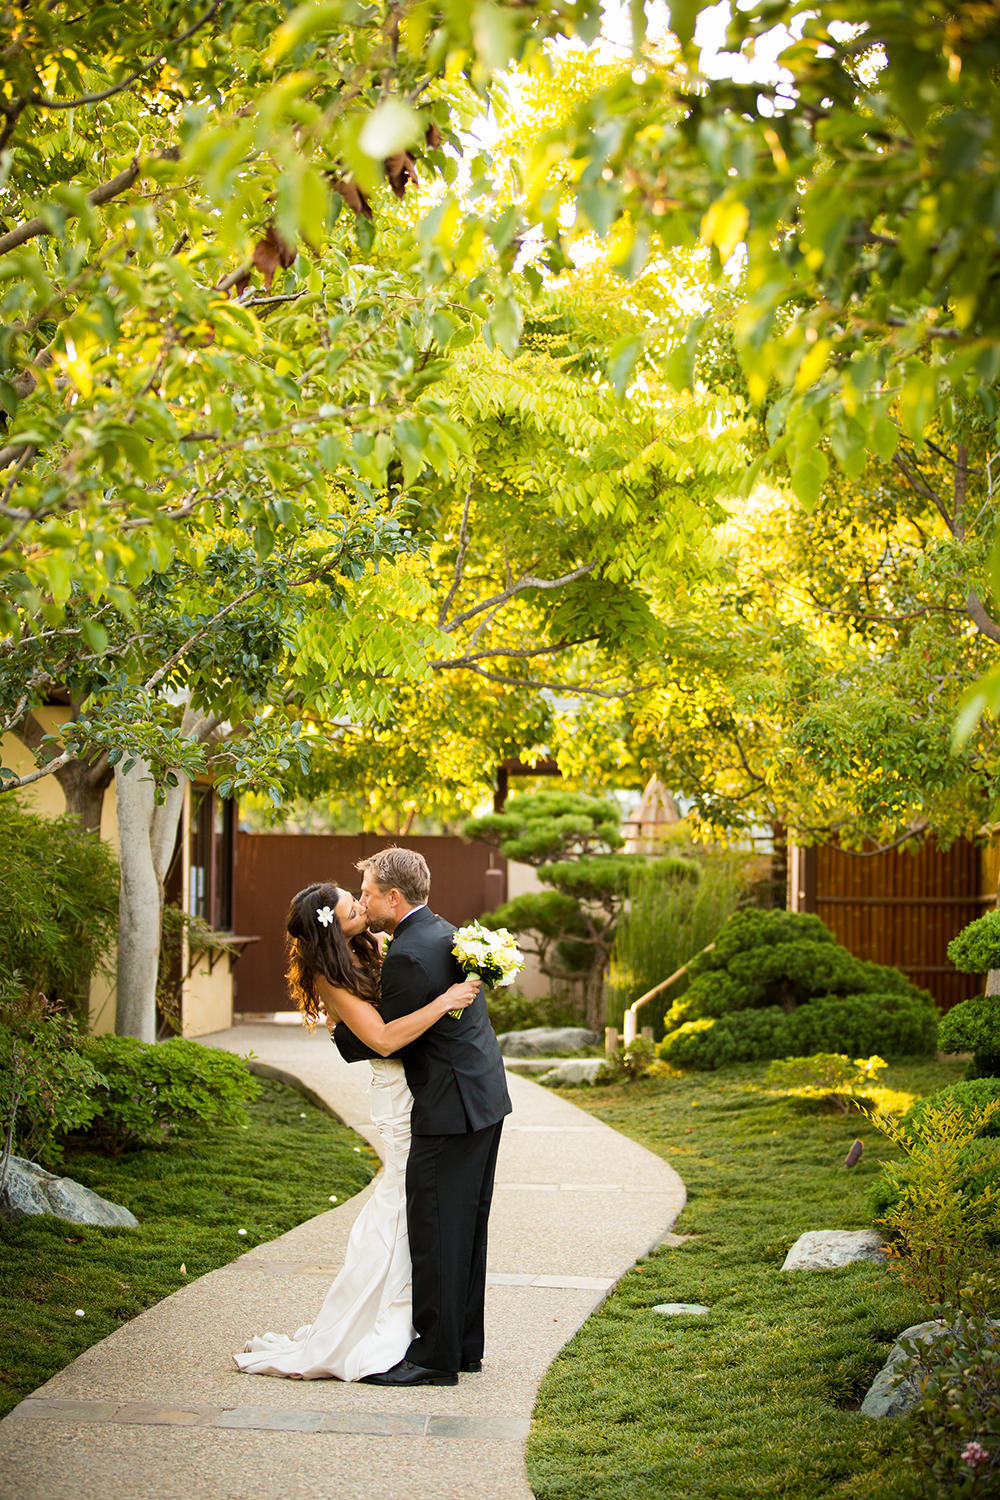 couple kissing in the garden